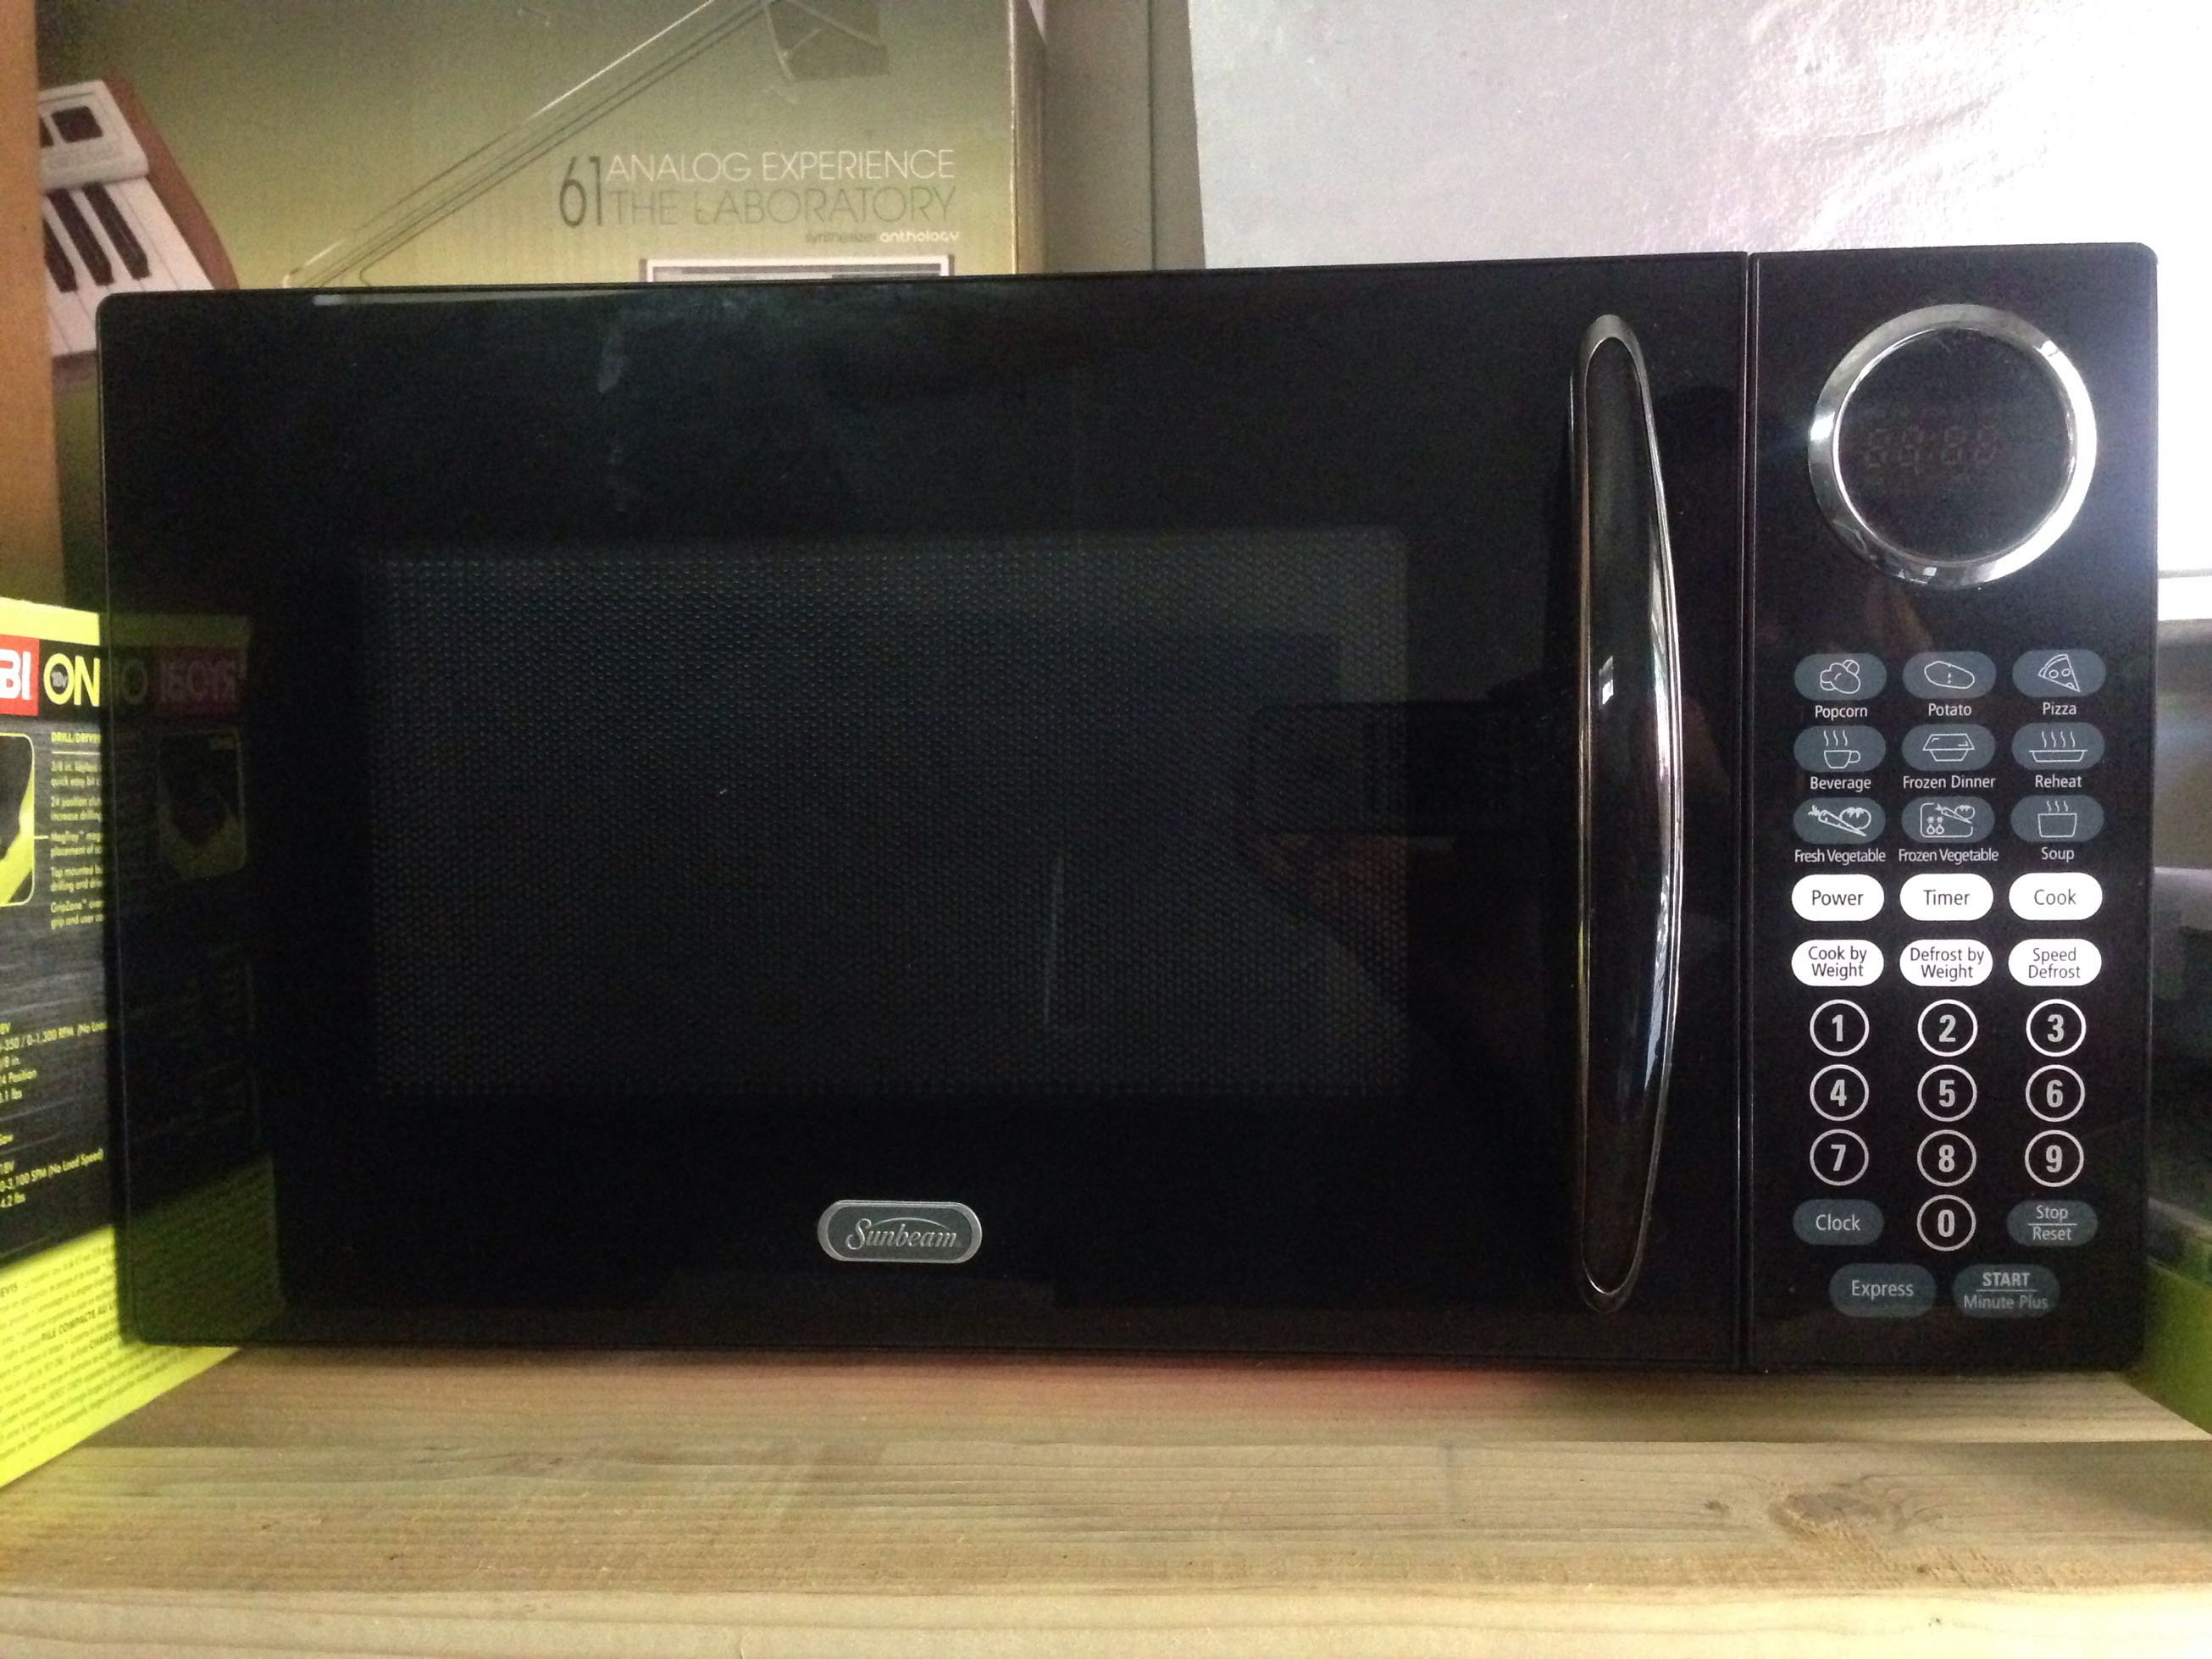 Sunbeam Sgb8901 Microwave Oven For Sale In La Ca 5miles